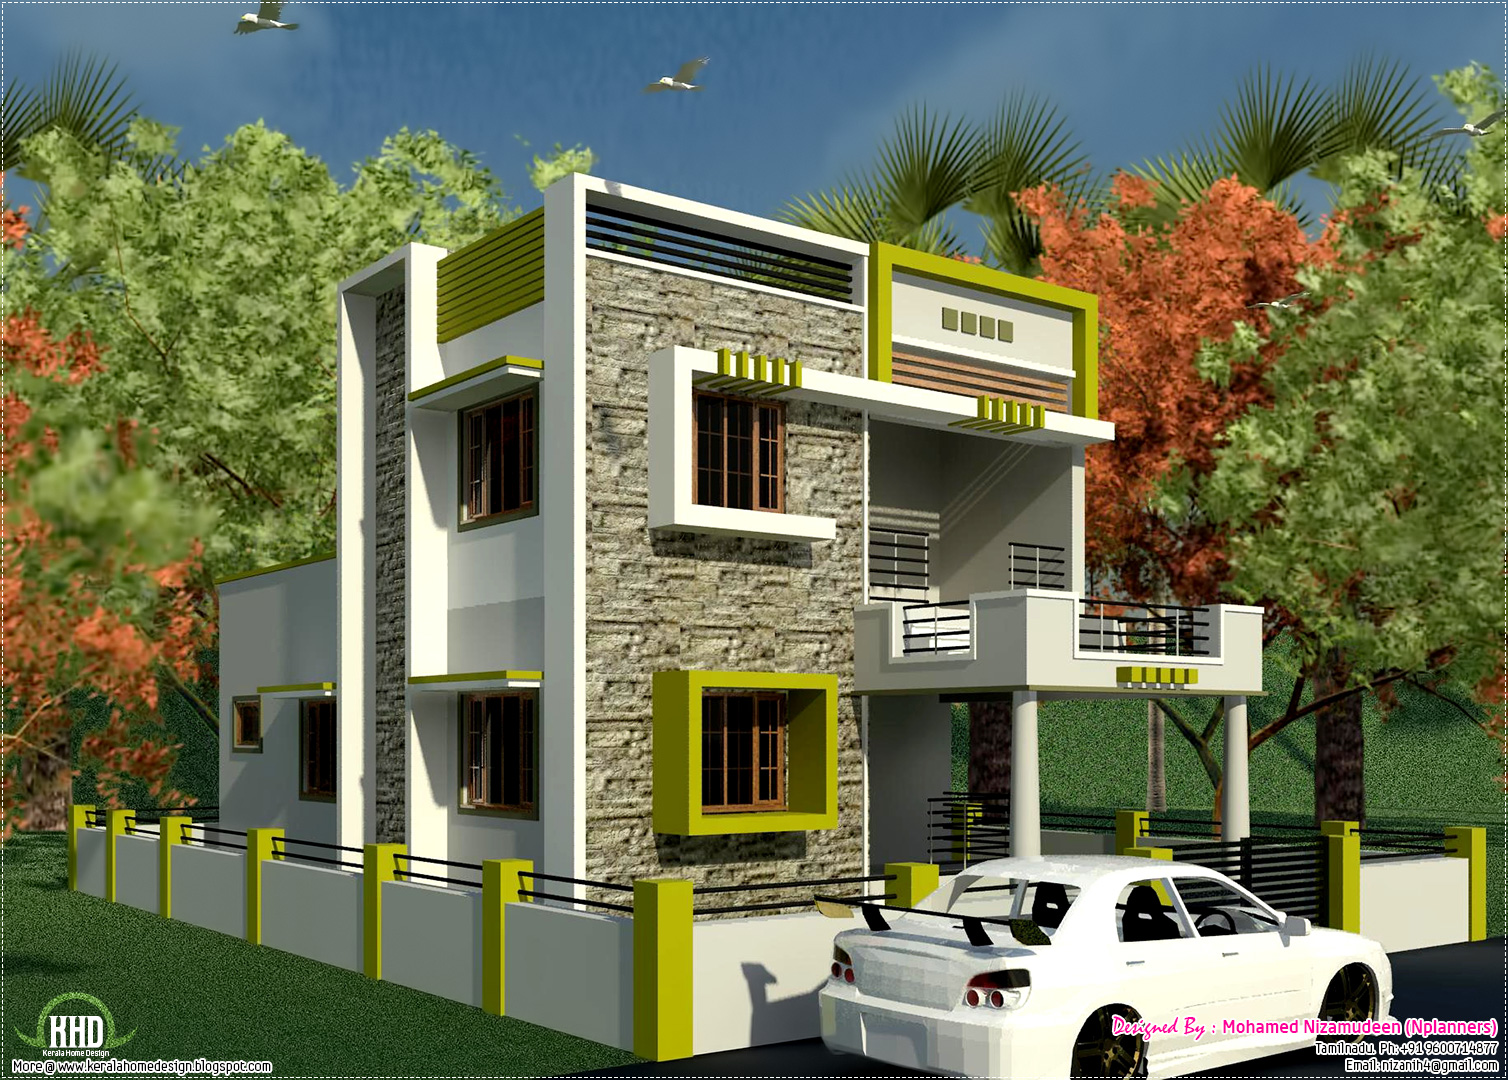 South Indian style new modern 1460 sq. feet house design